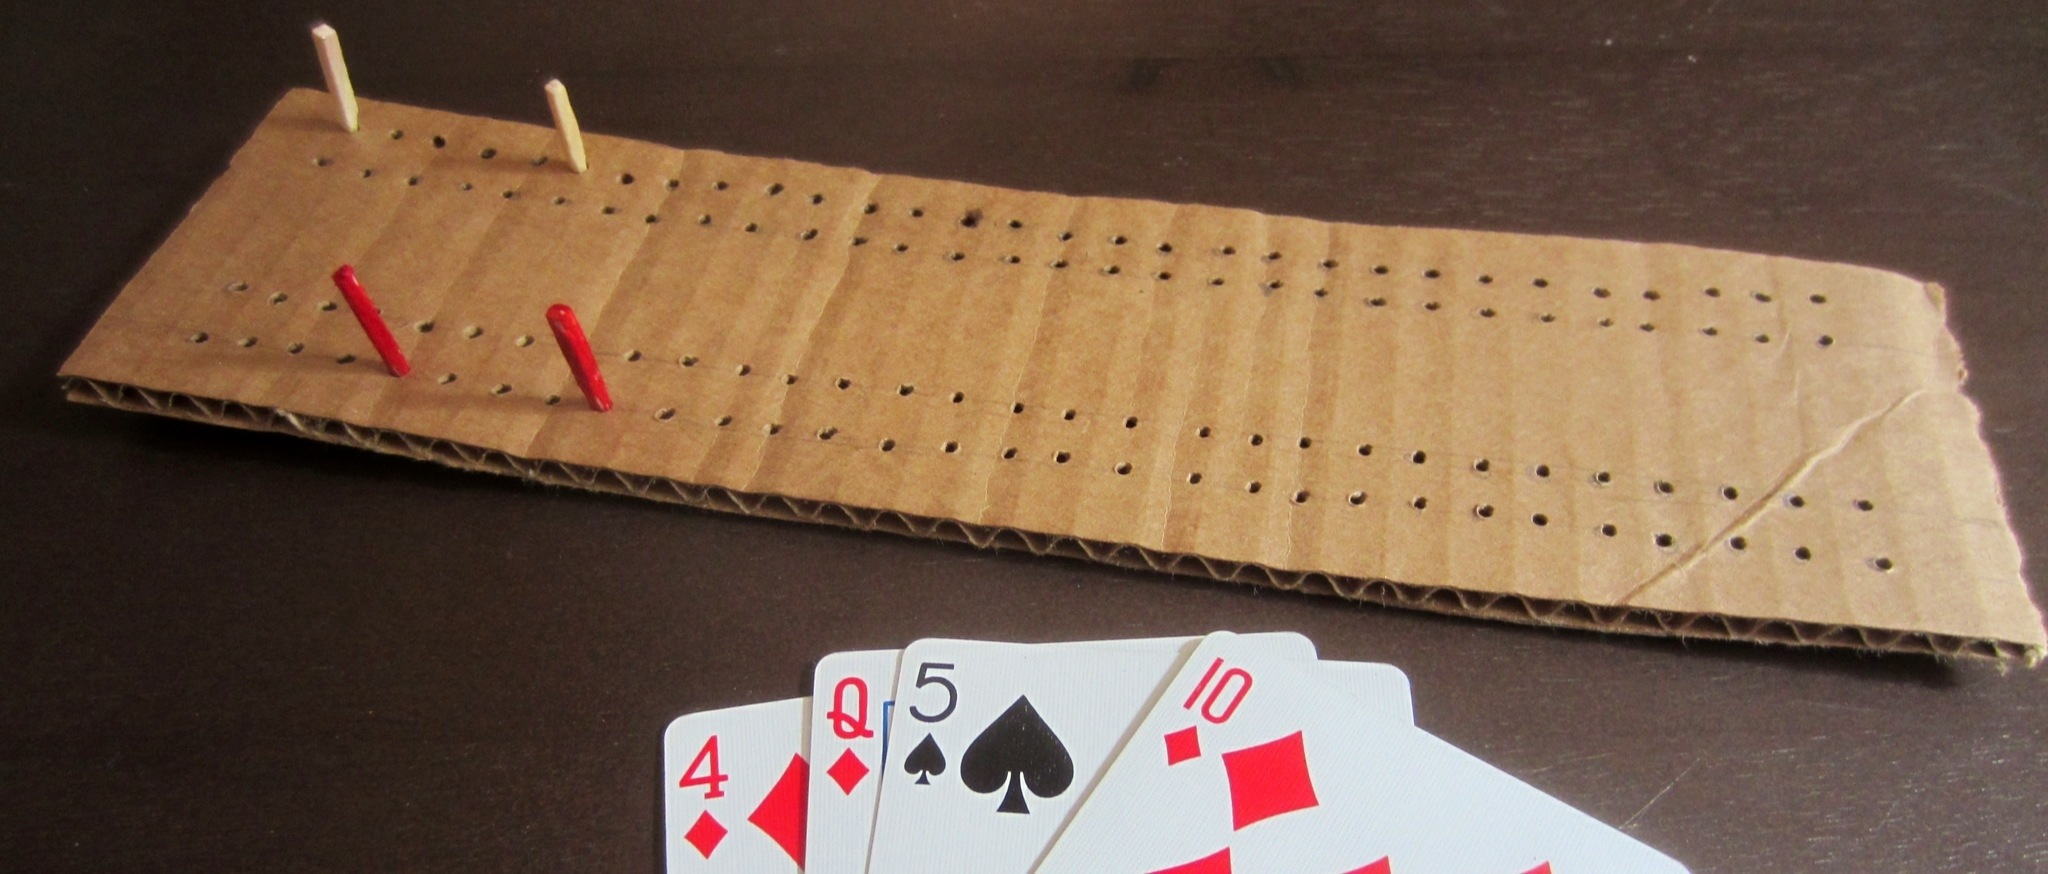 How To Build Make Your Own Cribbage Board Plans